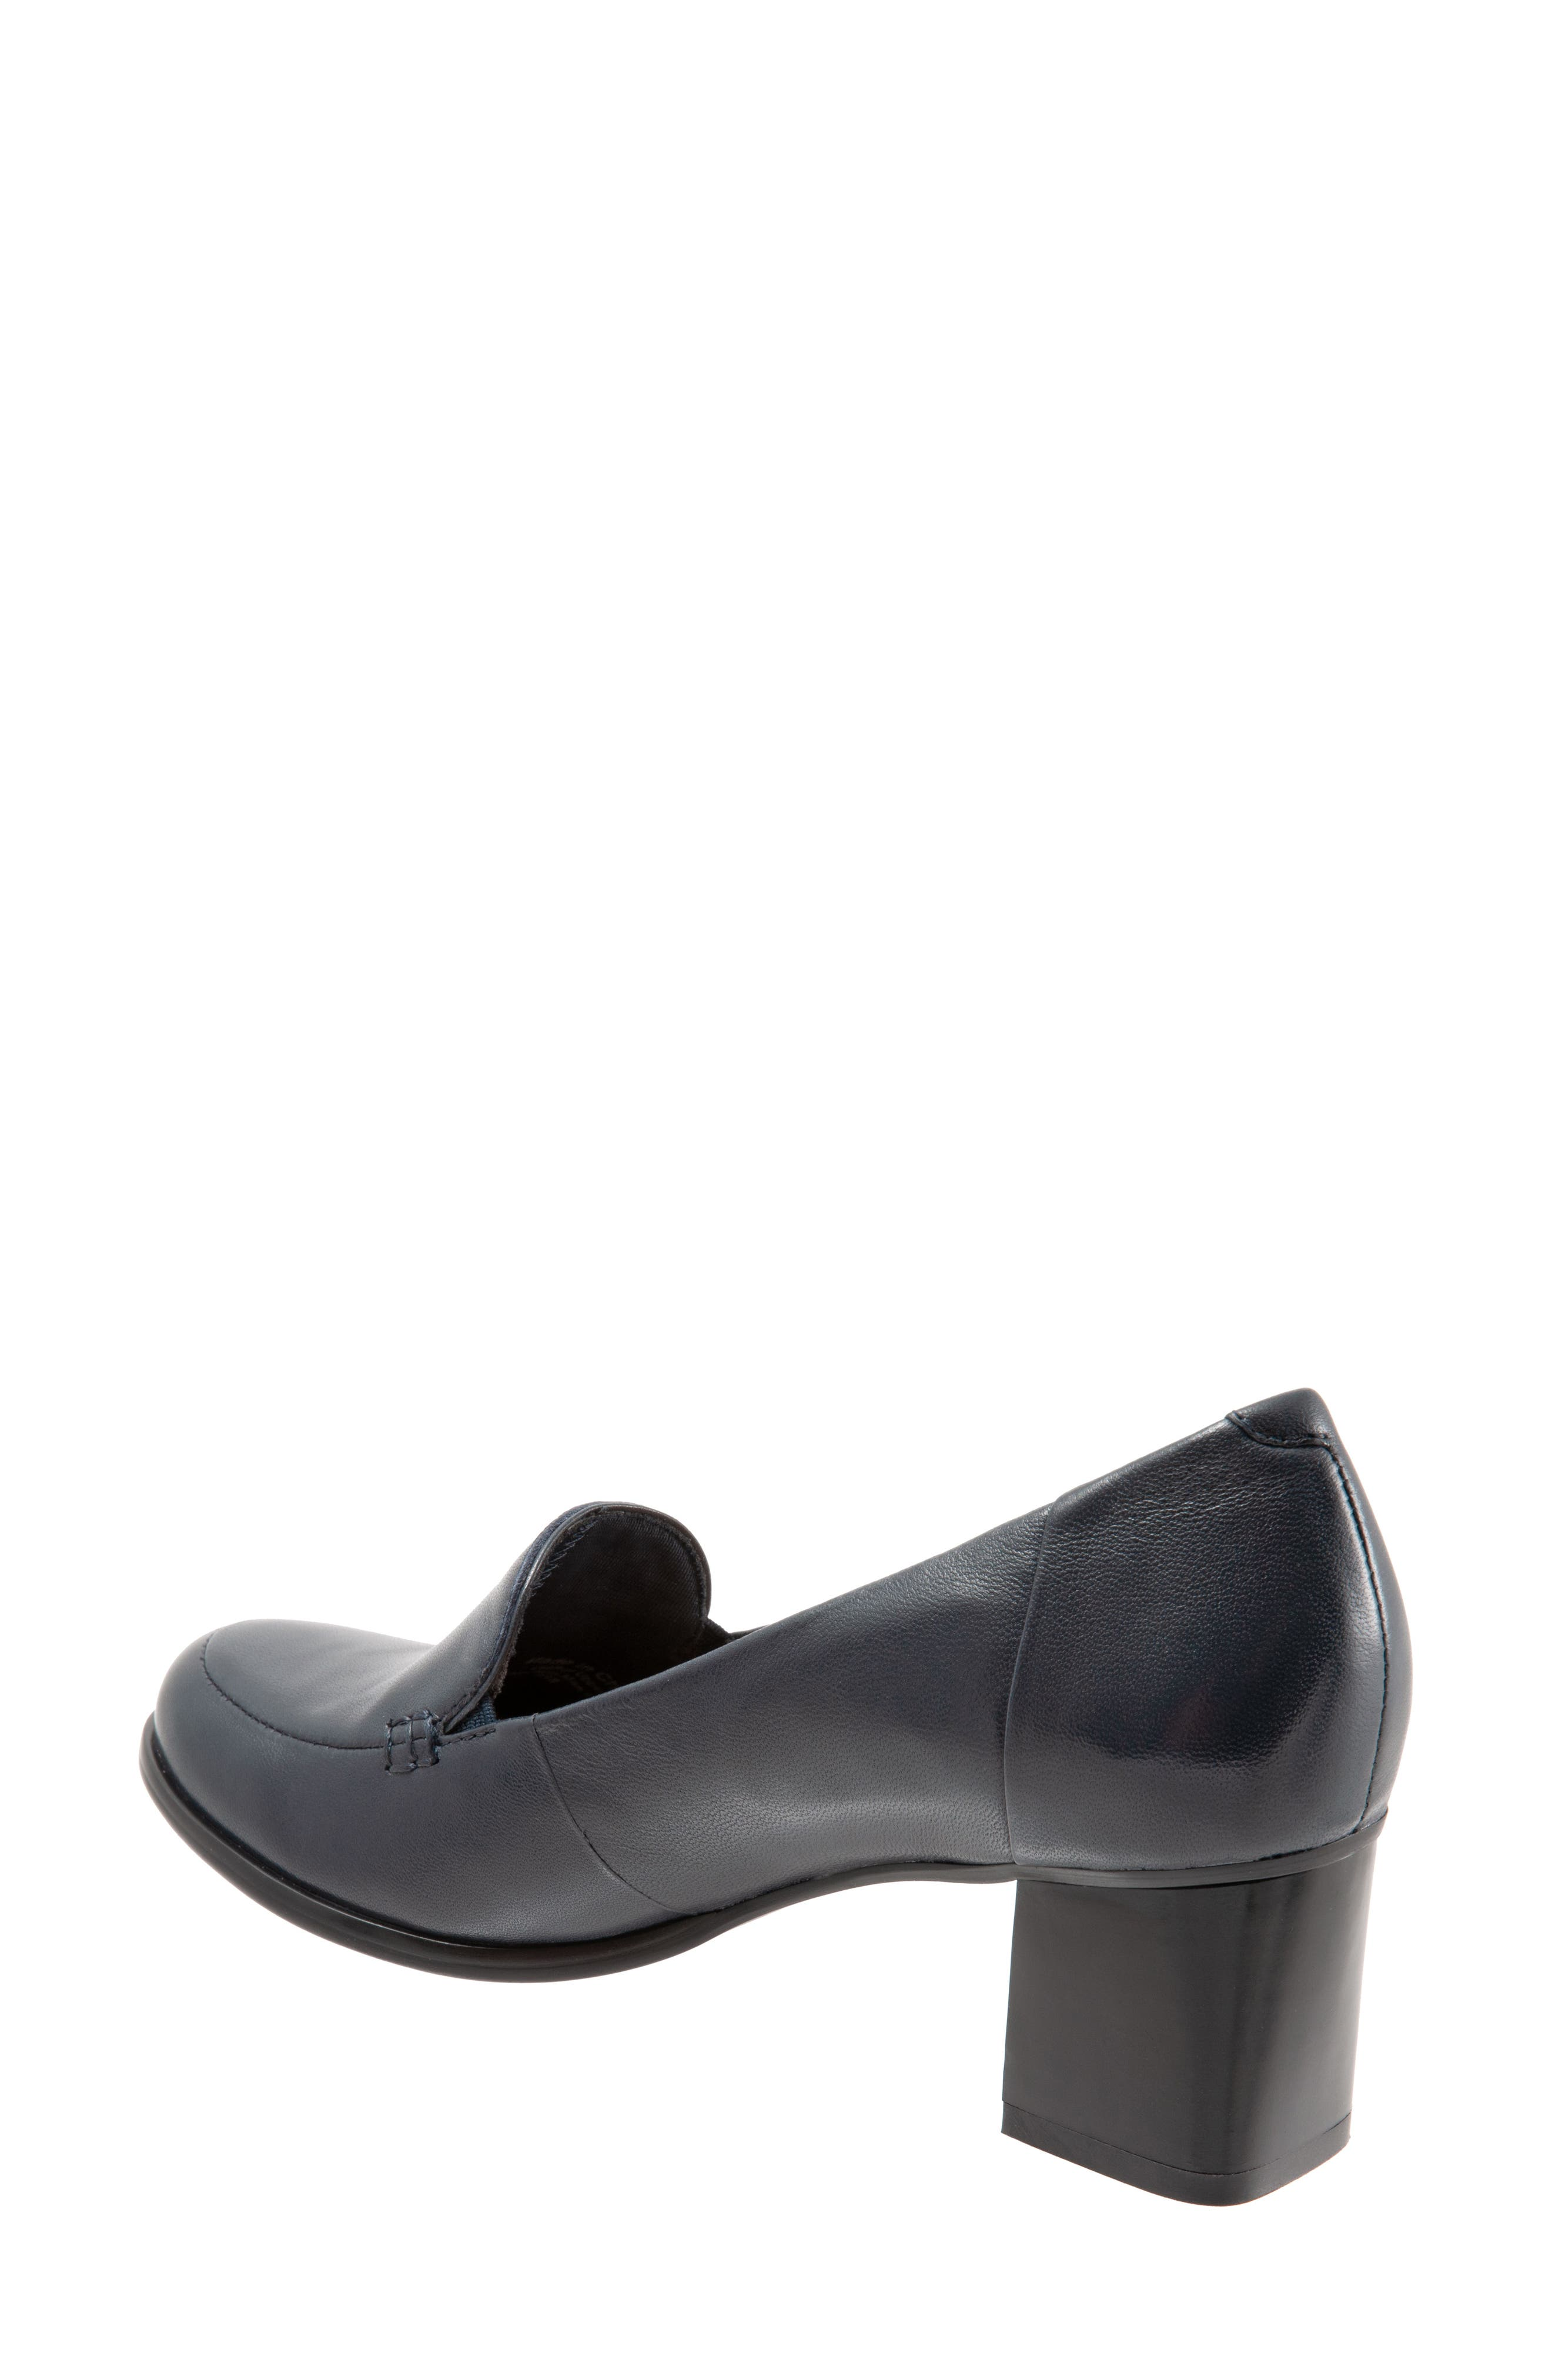 TROTTERS,                             Quincy Loafer Pump,                             Alternate thumbnail 2, color,                             NAVY LEATHER